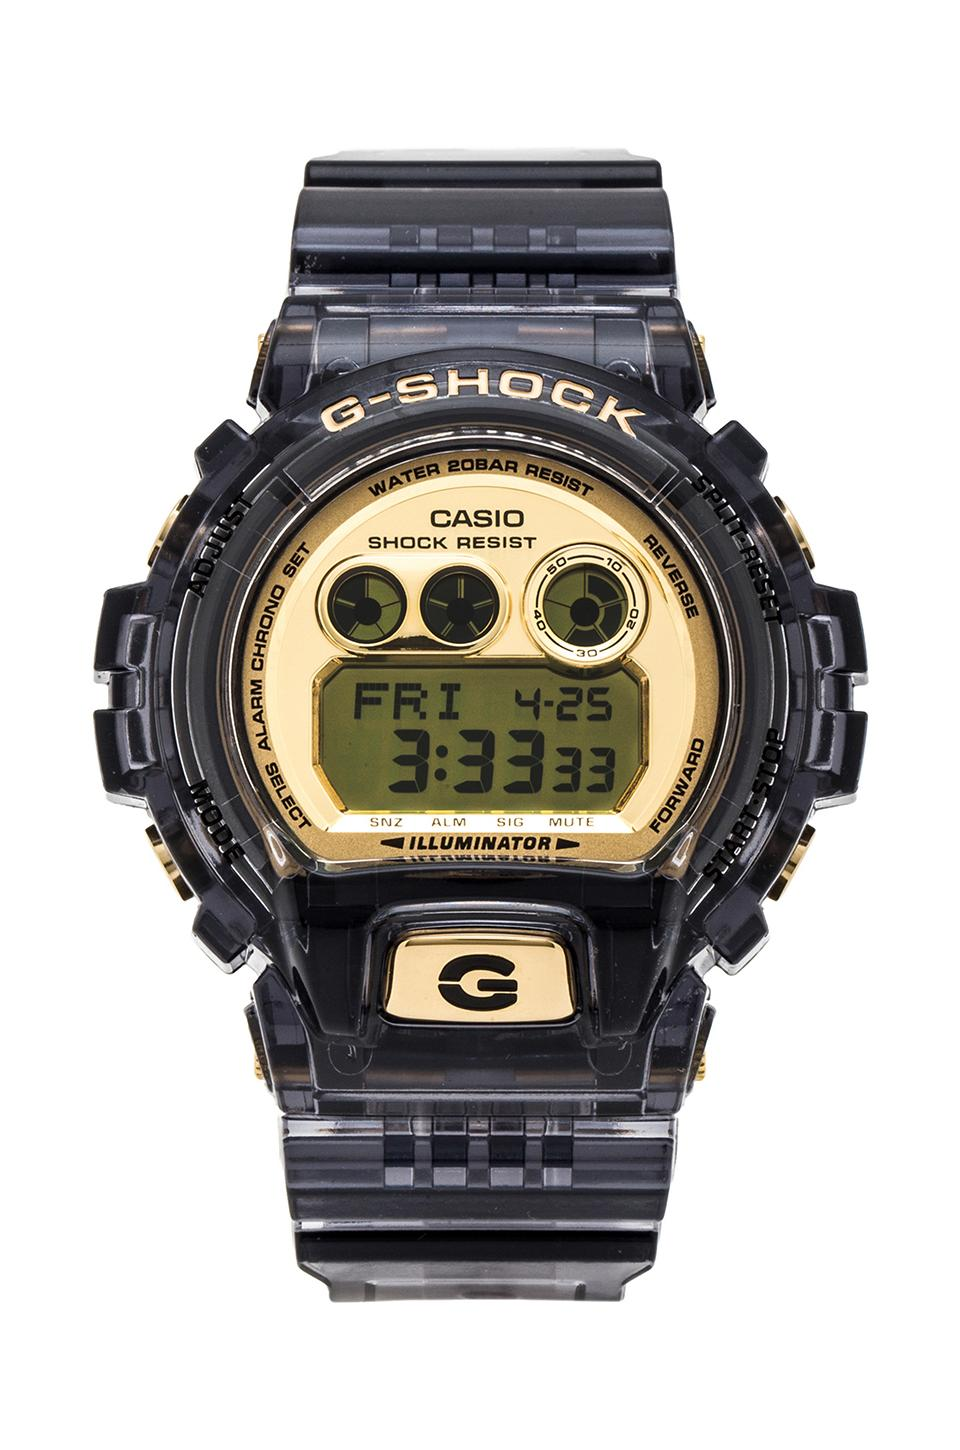 G-Shock 6900 XL Translucent in Black &Gold